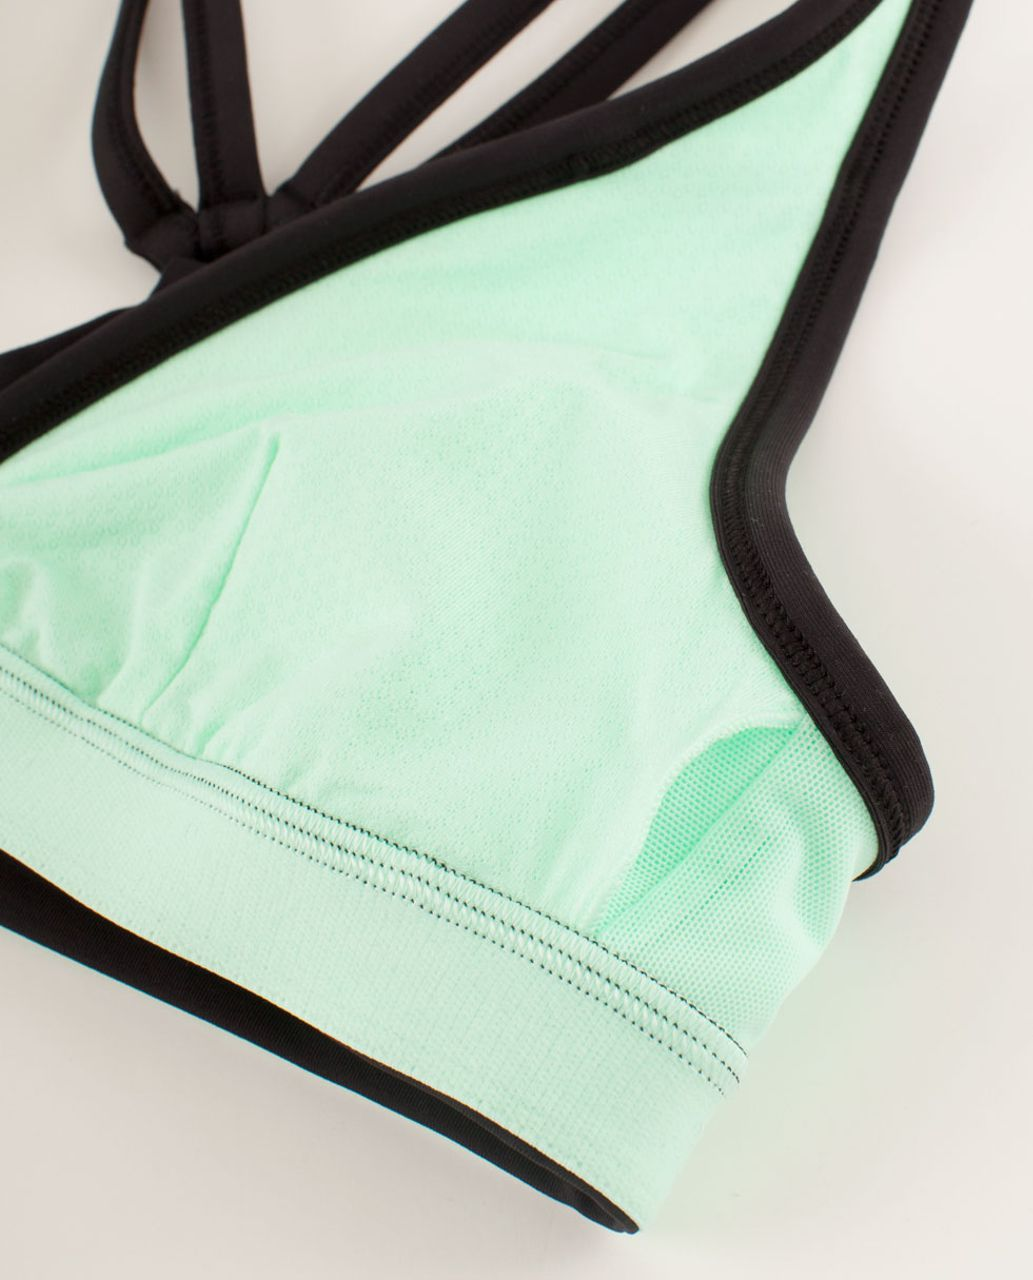 Lululemon Heat It Up Bra - Fresh Teal / White / Black